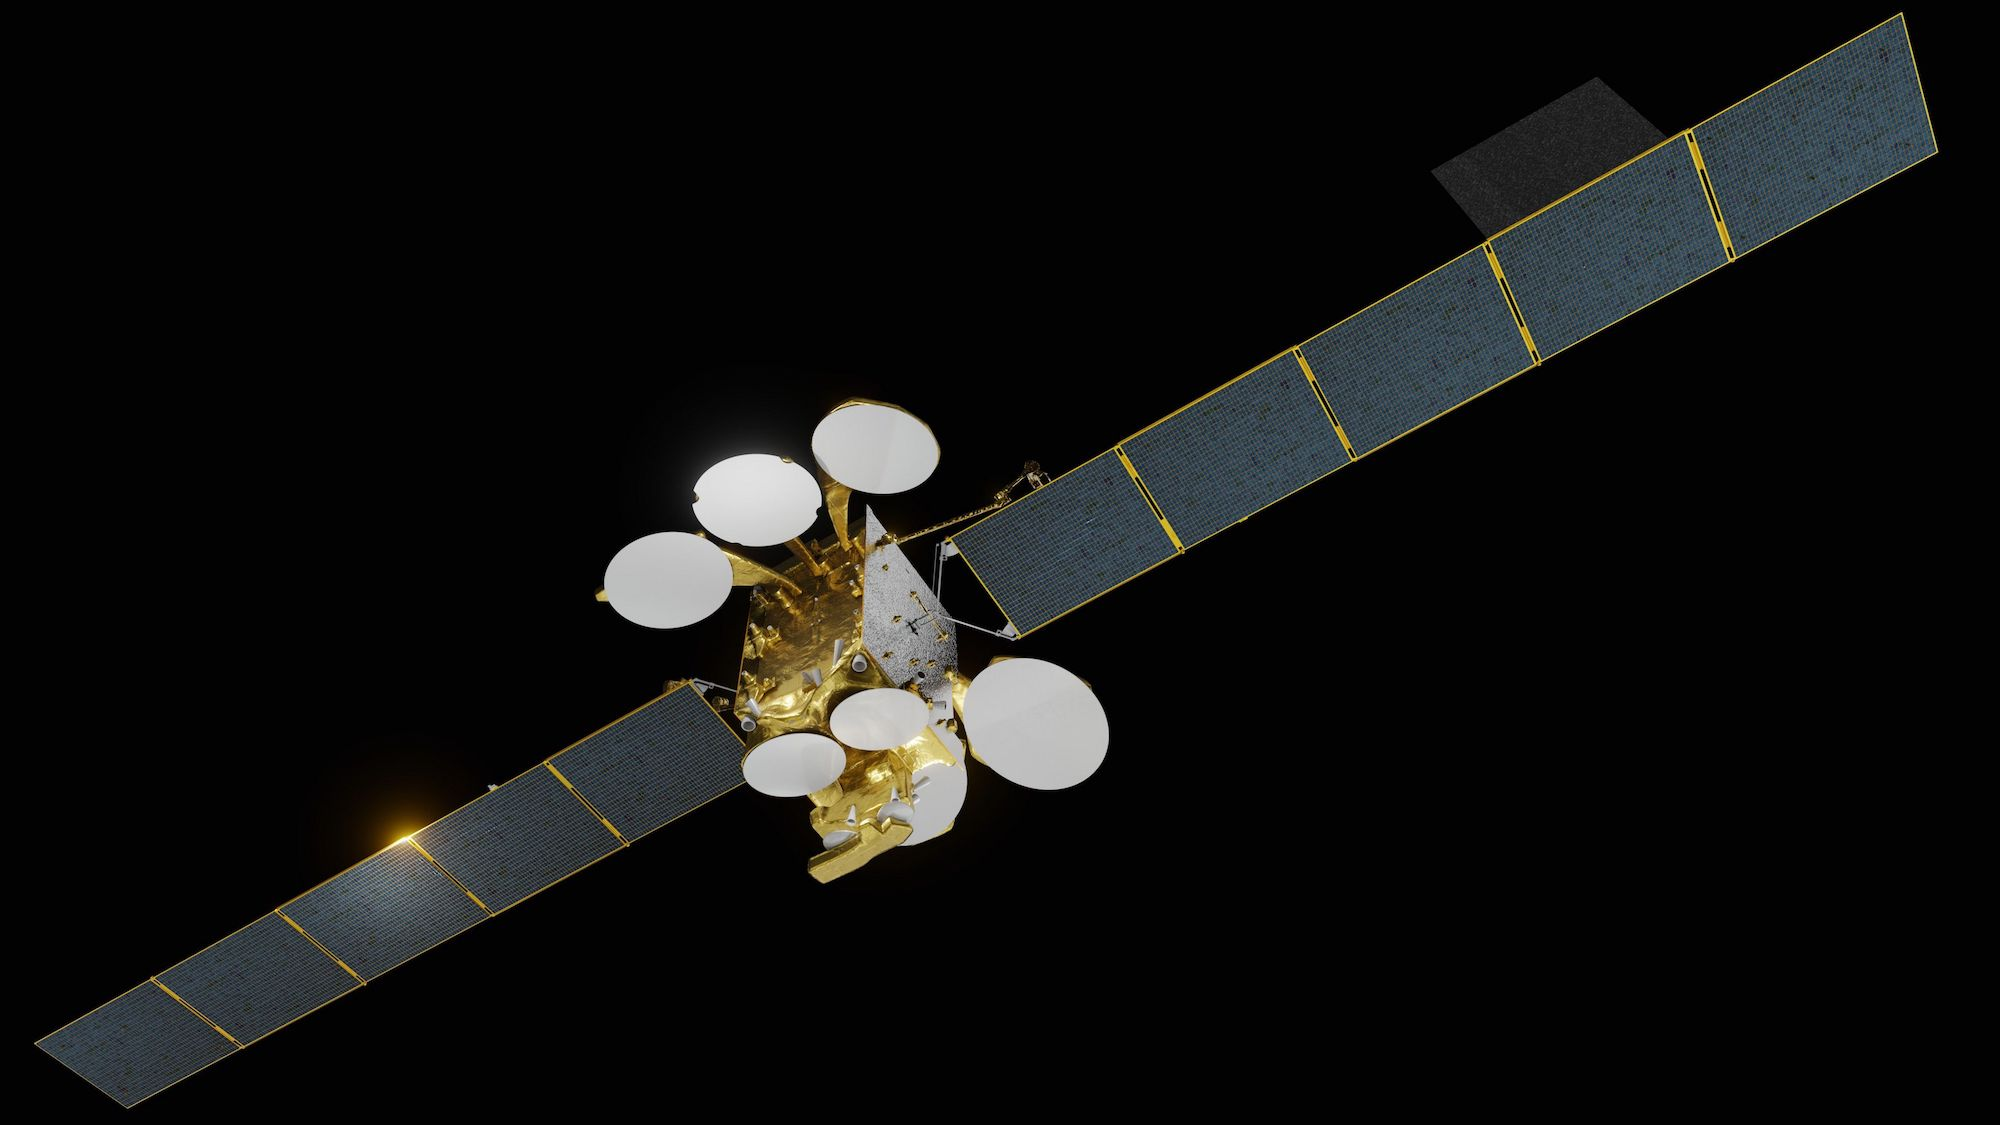 La satellite Turksat 5A (illustration). Crédit : Airbus Defence and Space